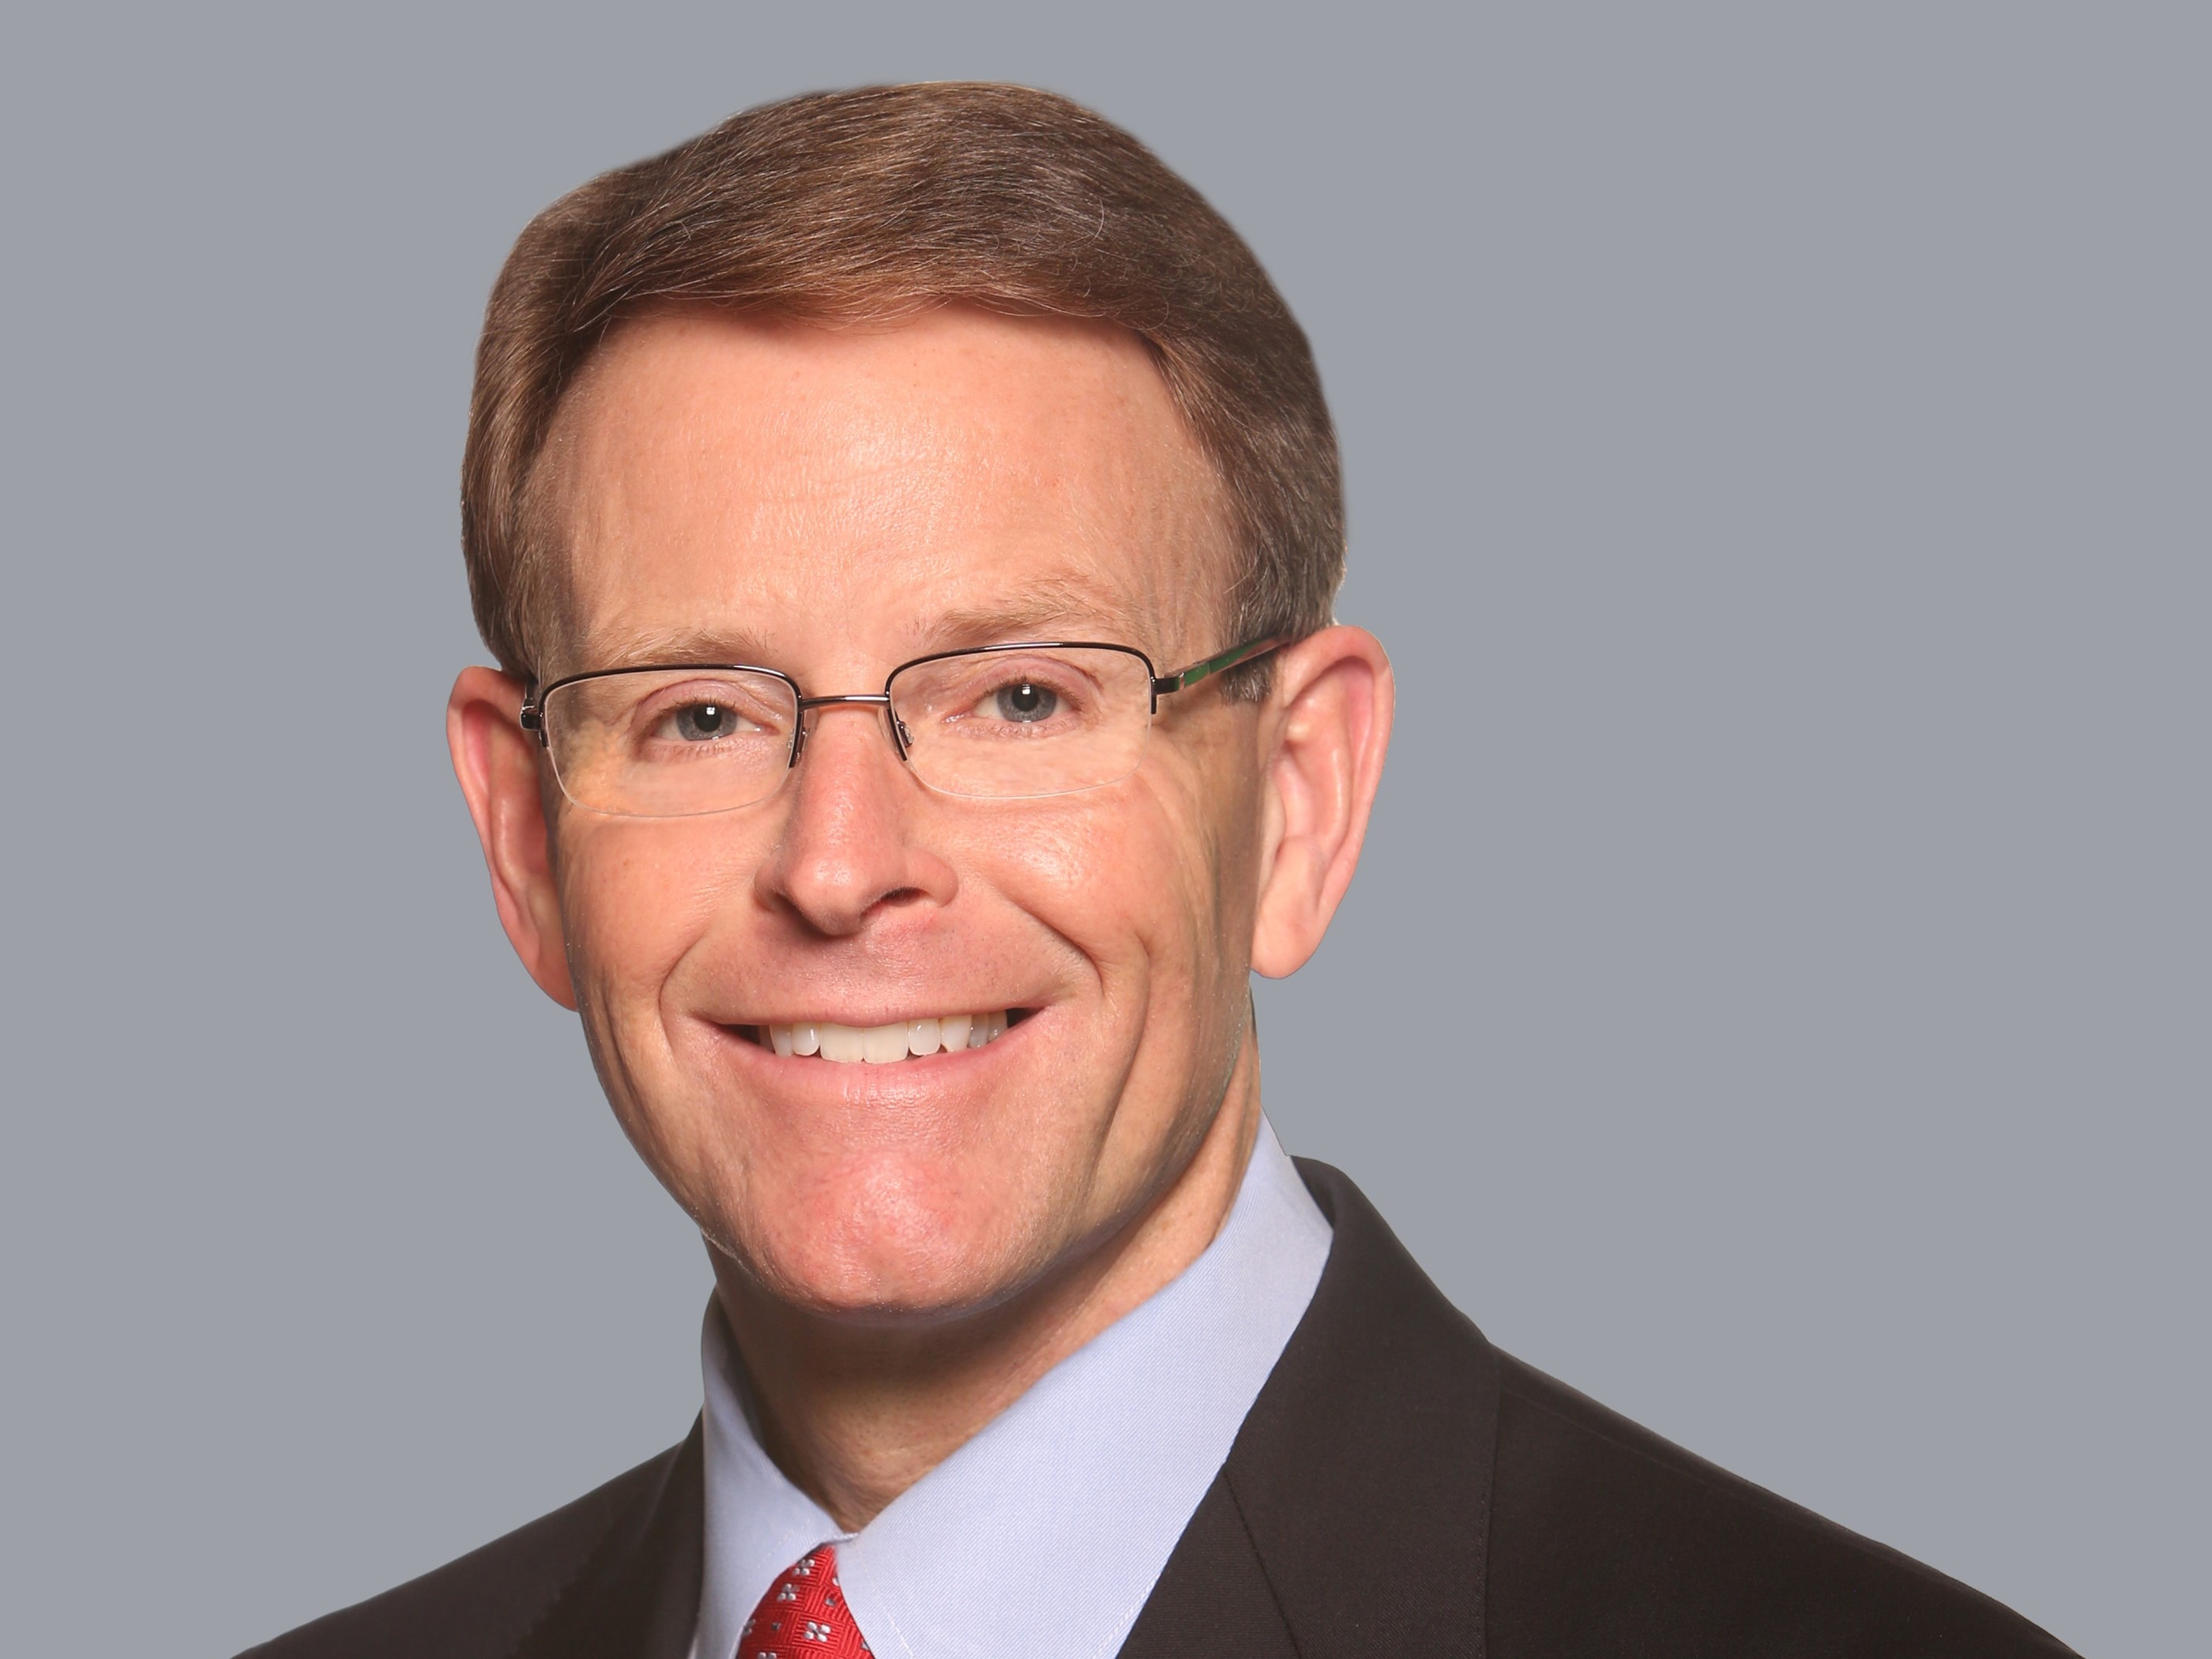 tony perkins anti-lgbtq biden trump